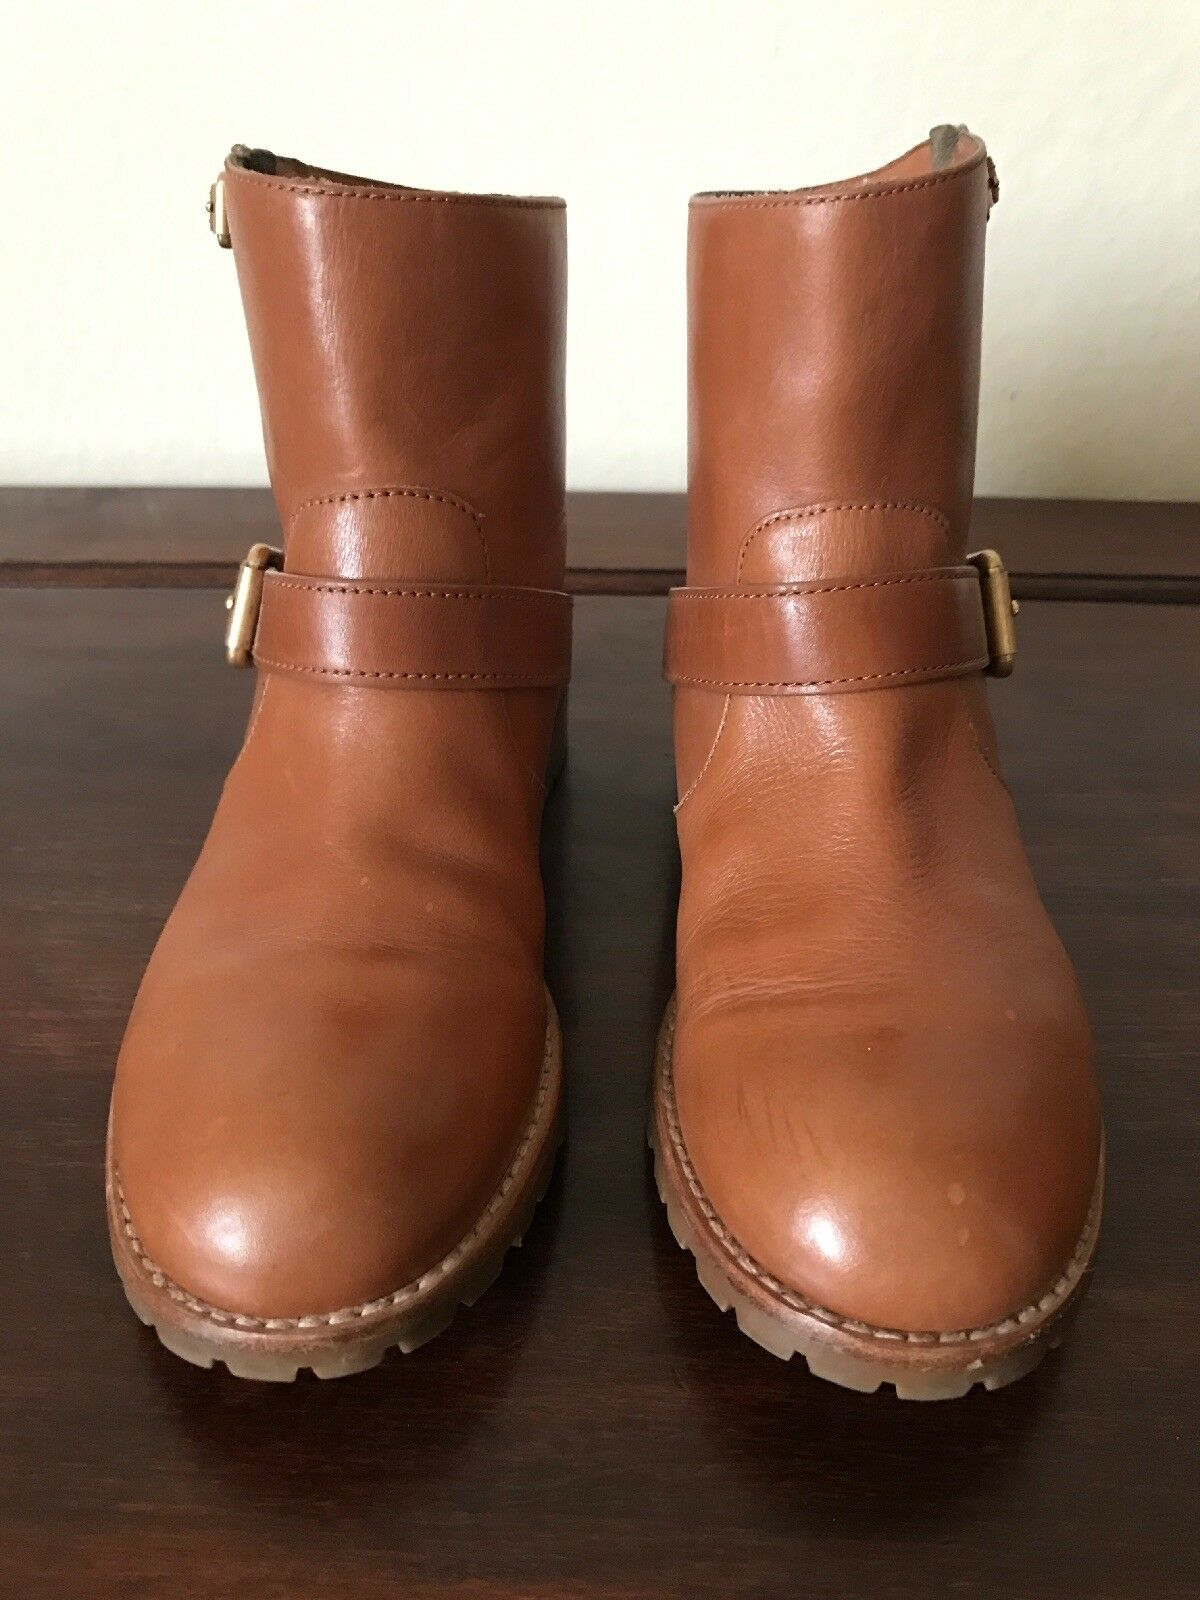 Beautiful Marc By Marc Jacobs Brown Chestnut Chestnut Chestnut Leather Ankle Boots Size 37 U.S. 7 ef41f3